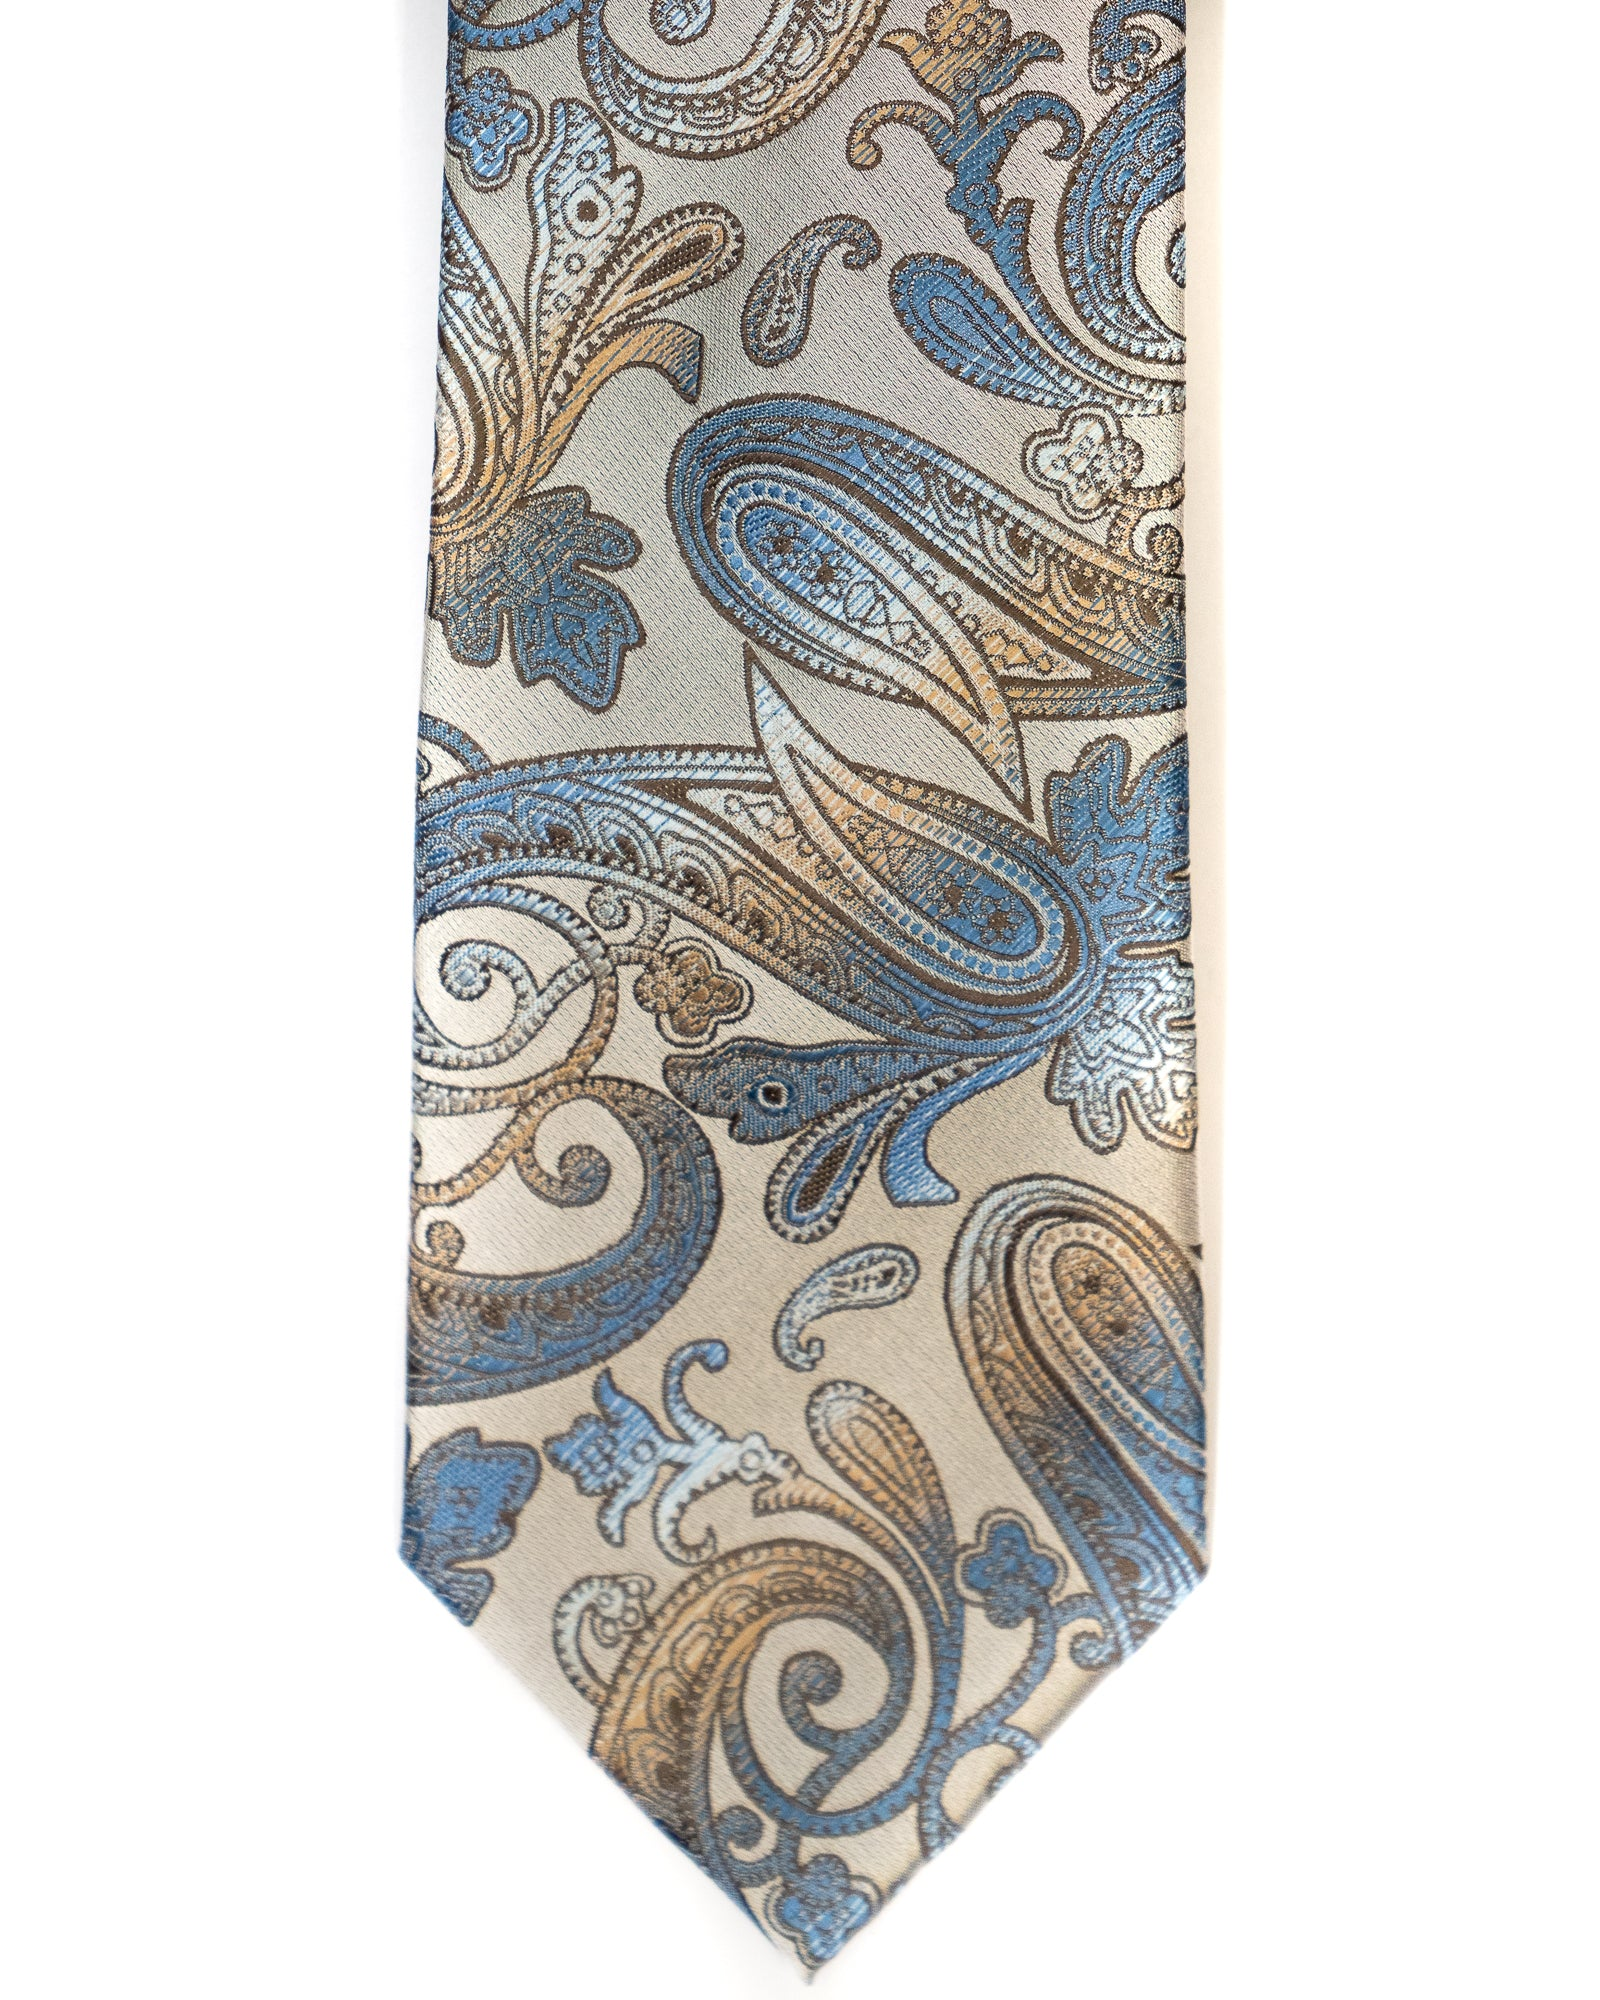 Venturi Uomo Paisley Tie in Grey with Blue - Rainwater's